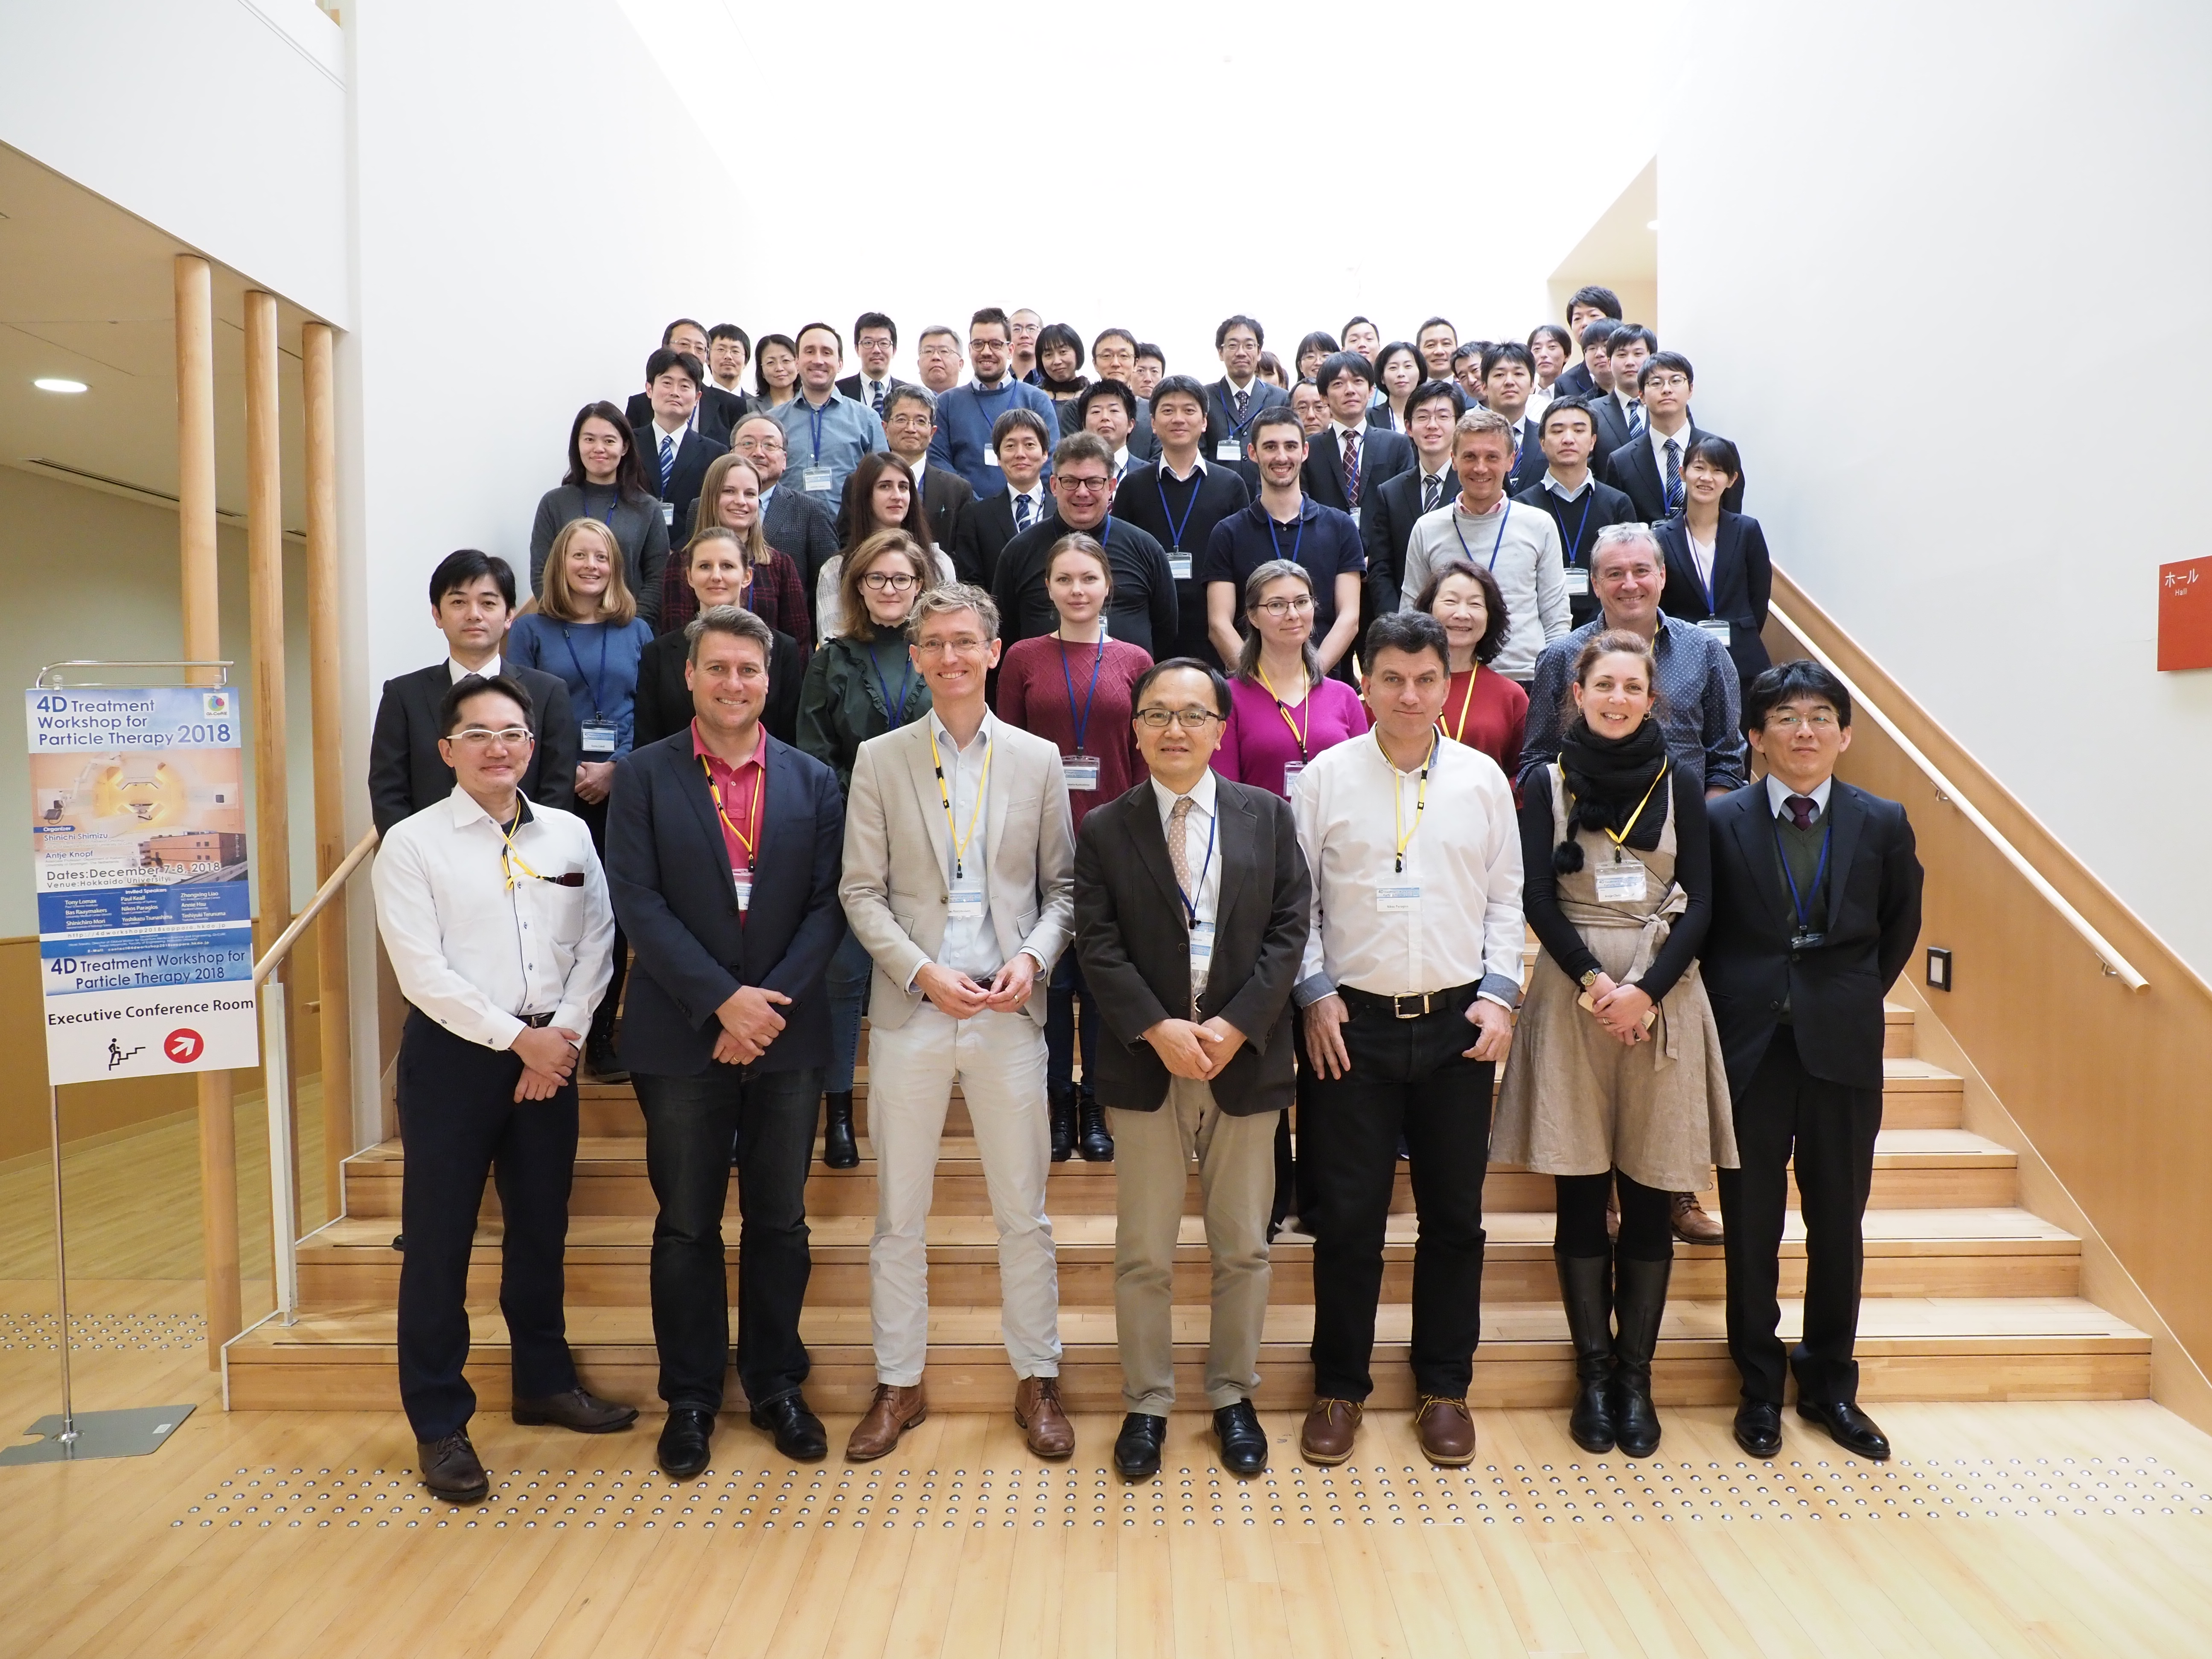 Hokkaido University hosts the 2018 4D Treatment Workshop for